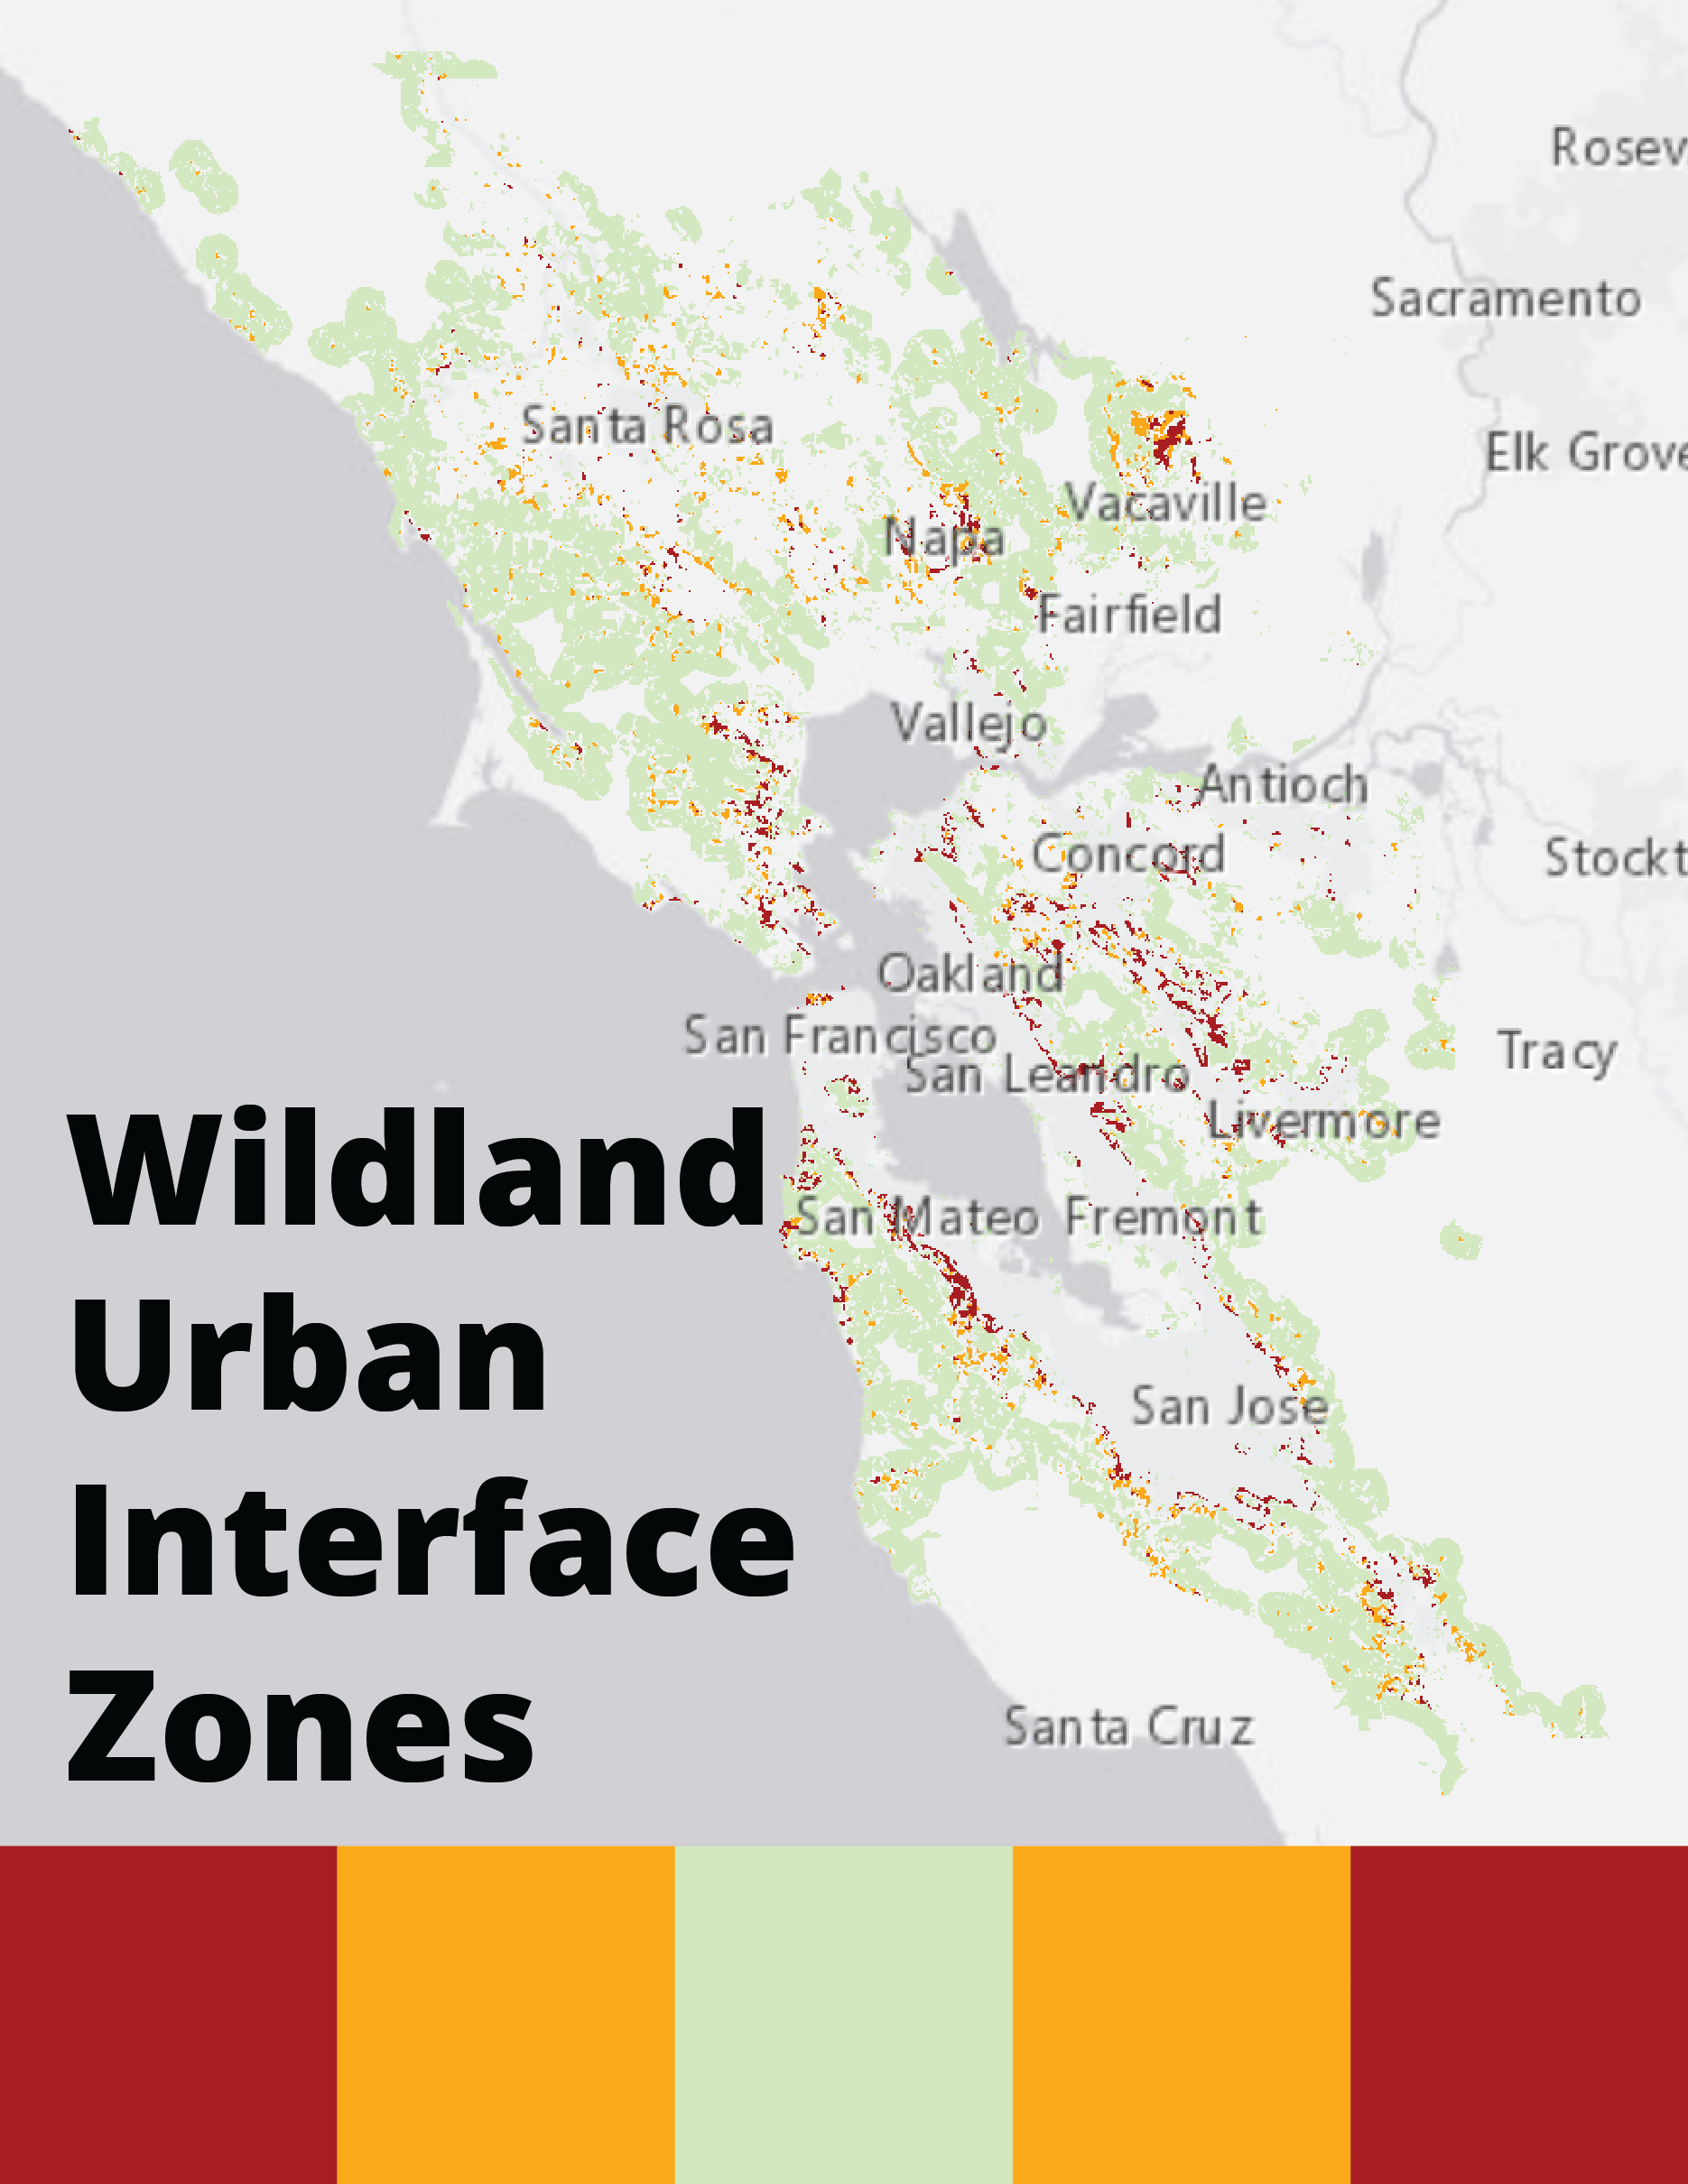 Wildland-Urban Interface